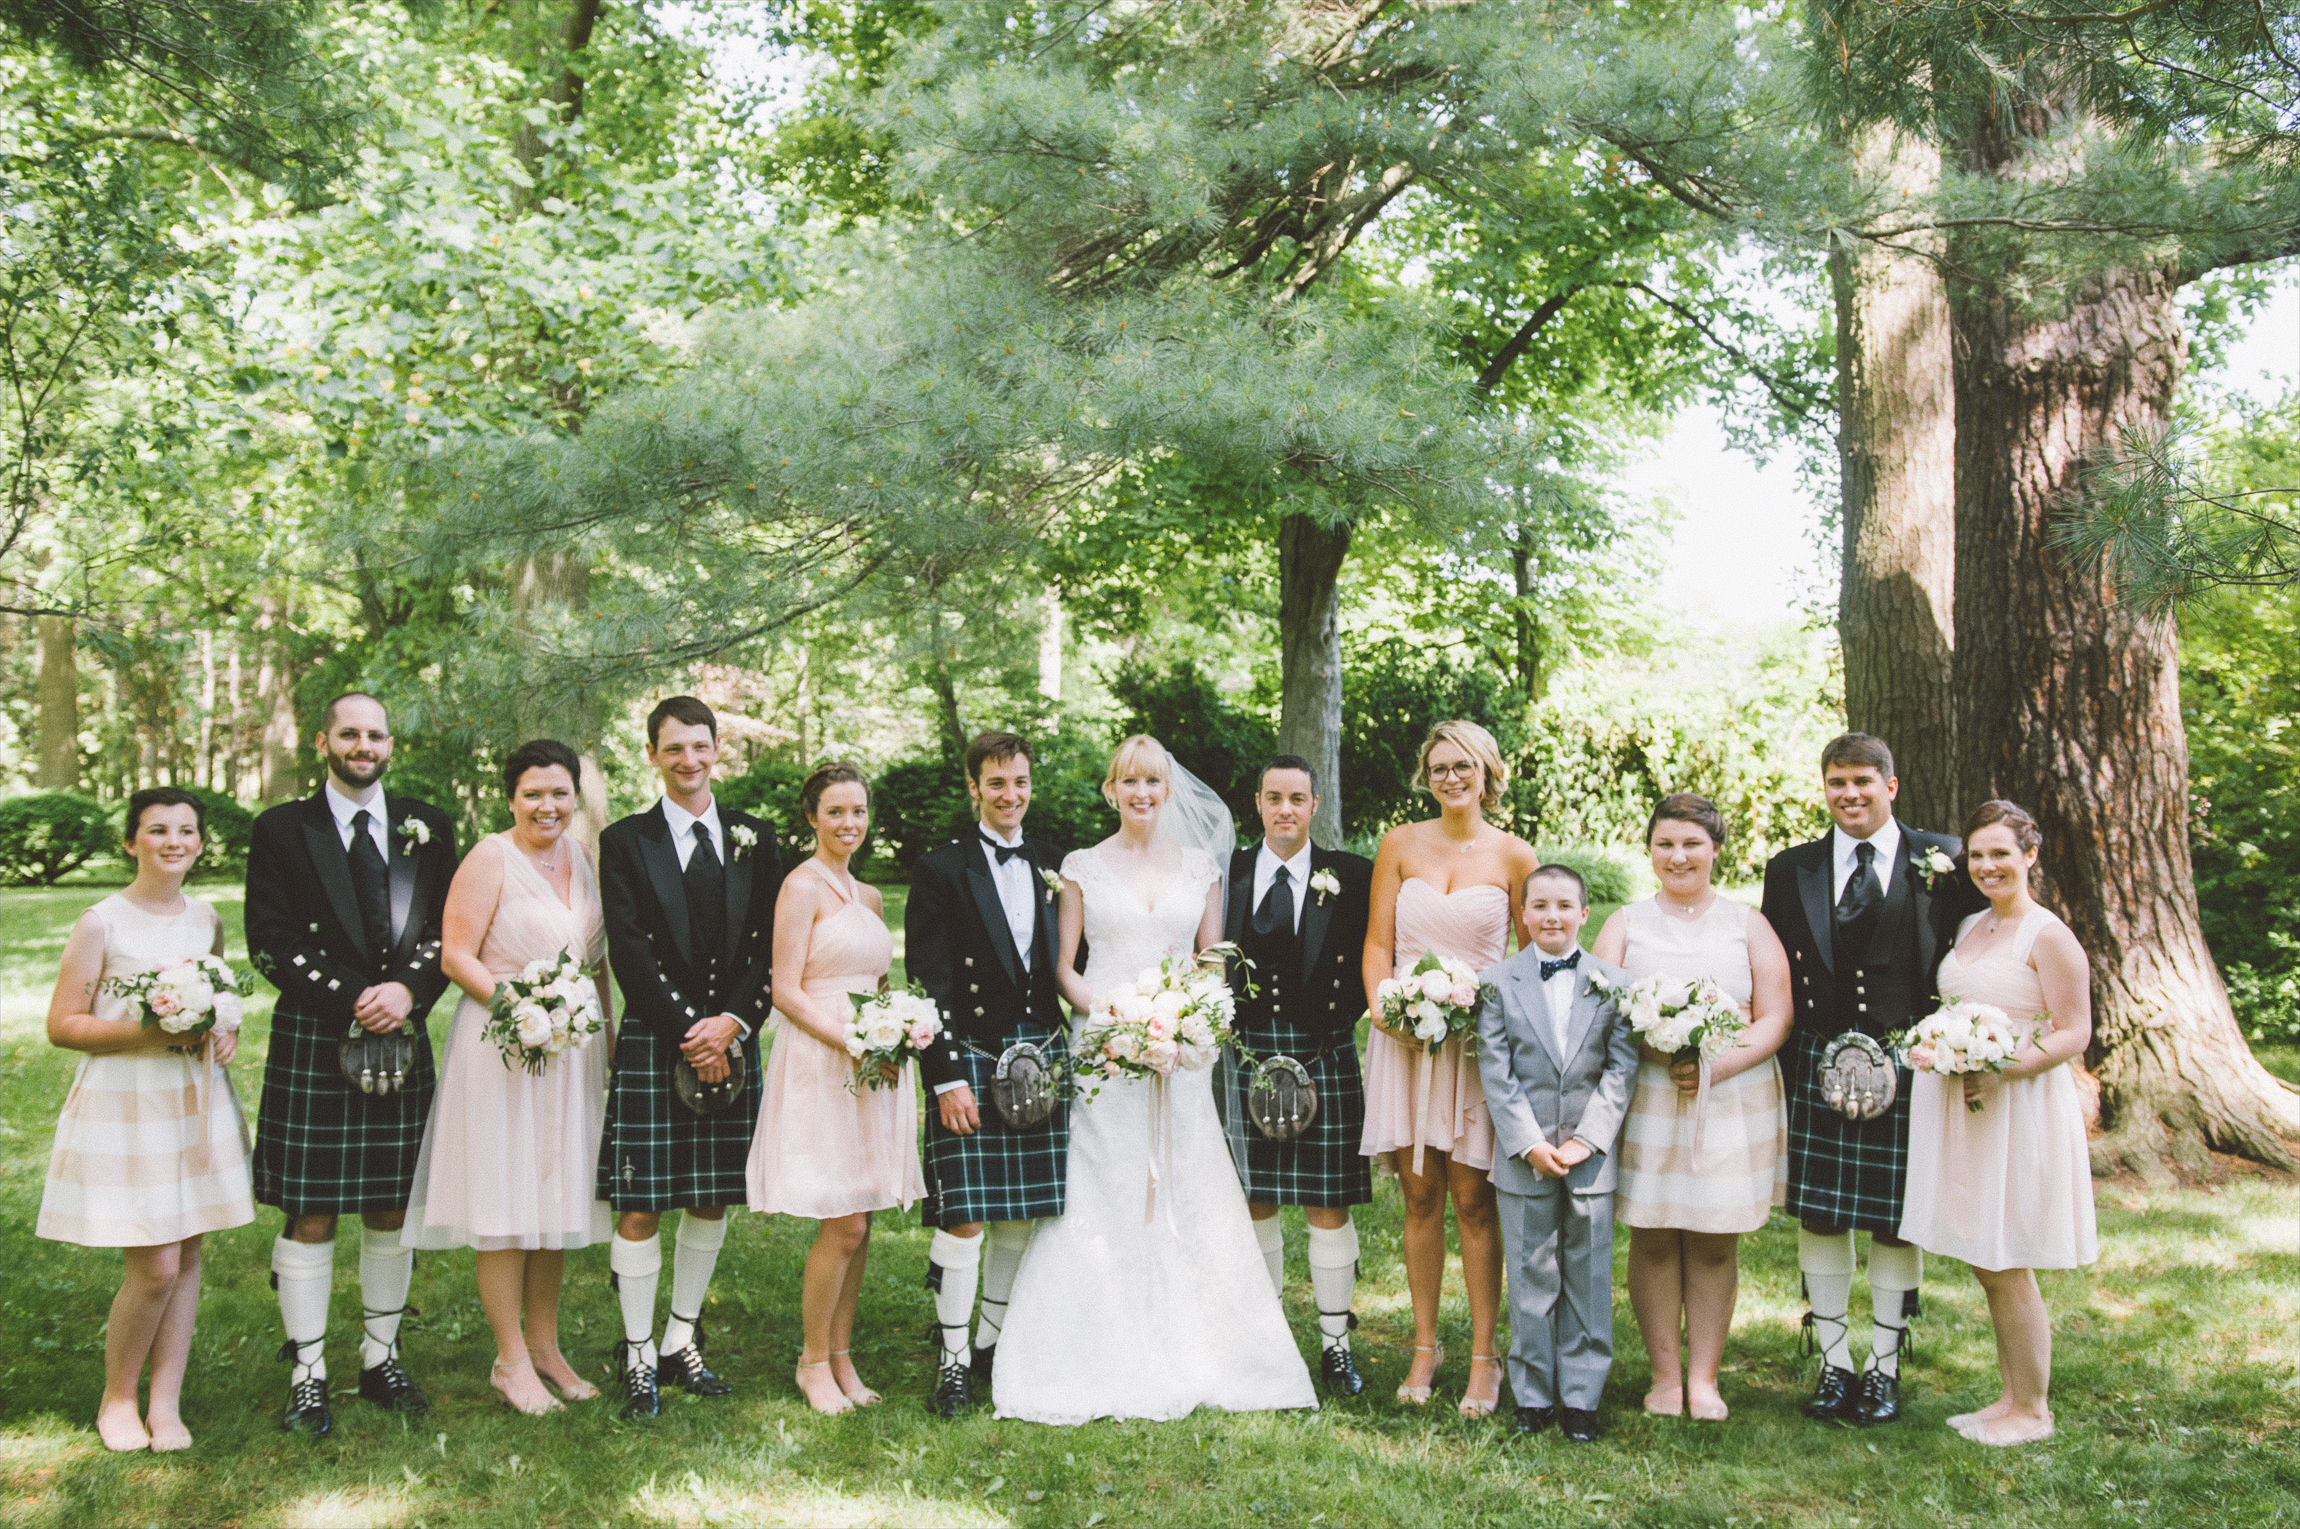 amanda cowley events niagara wedding planner kurtz orchard gracewood estate family portraits formal trees